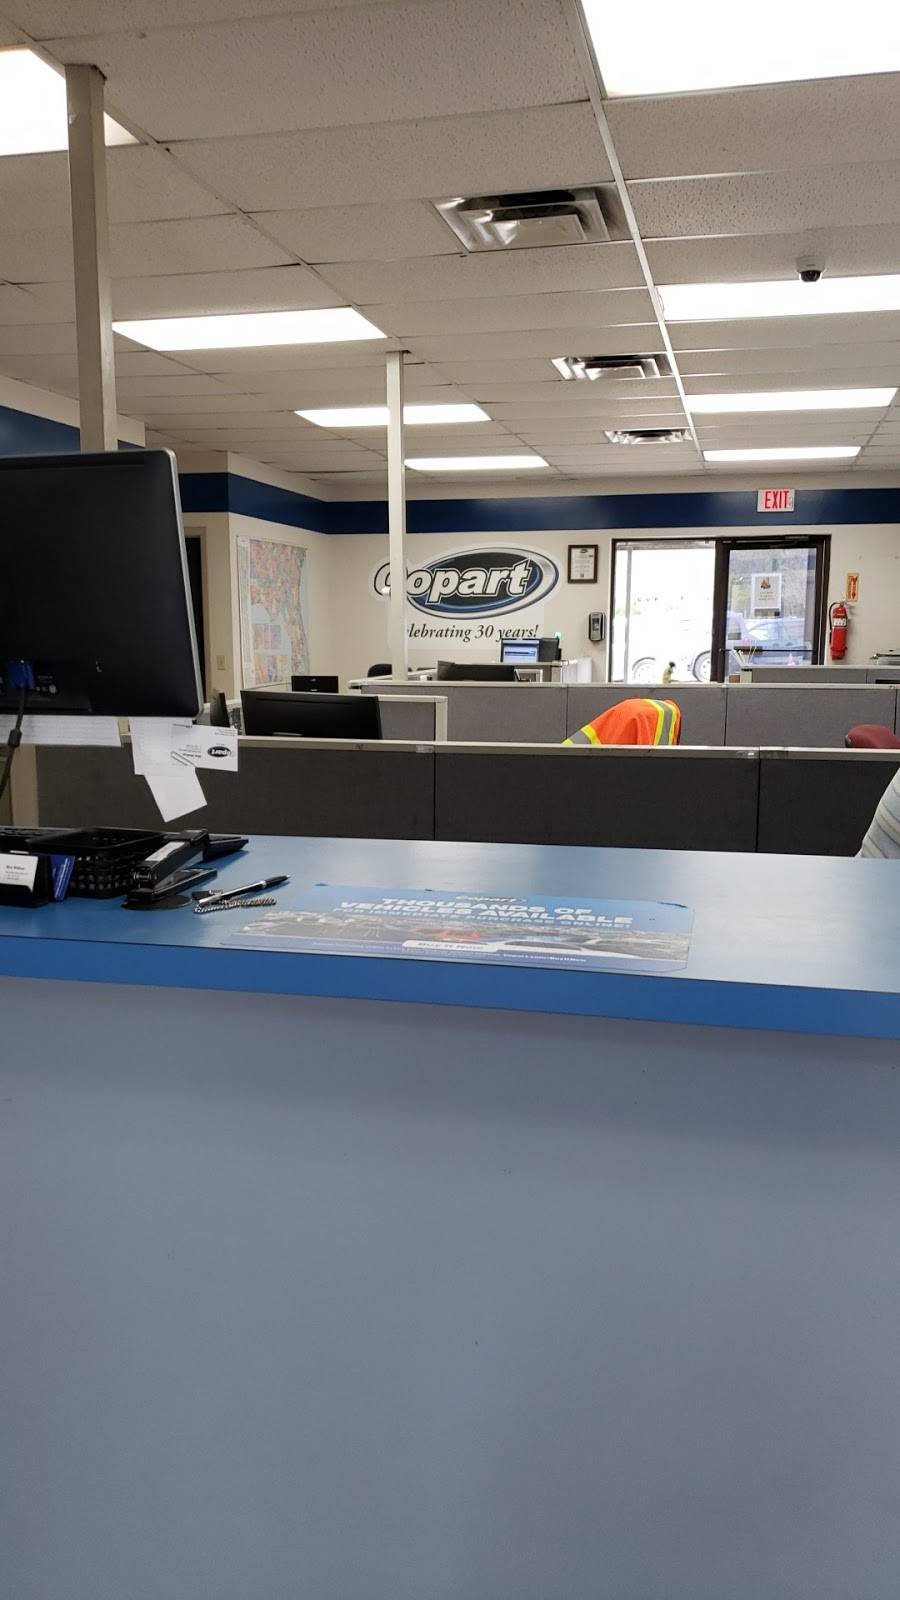 Copart - Jacksonville West - car dealer  | Photo 3 of 10 | Address: 450 Hammond Blvd Building 1, Jacksonville, FL 32220, USA | Phone: (904) 781-3141